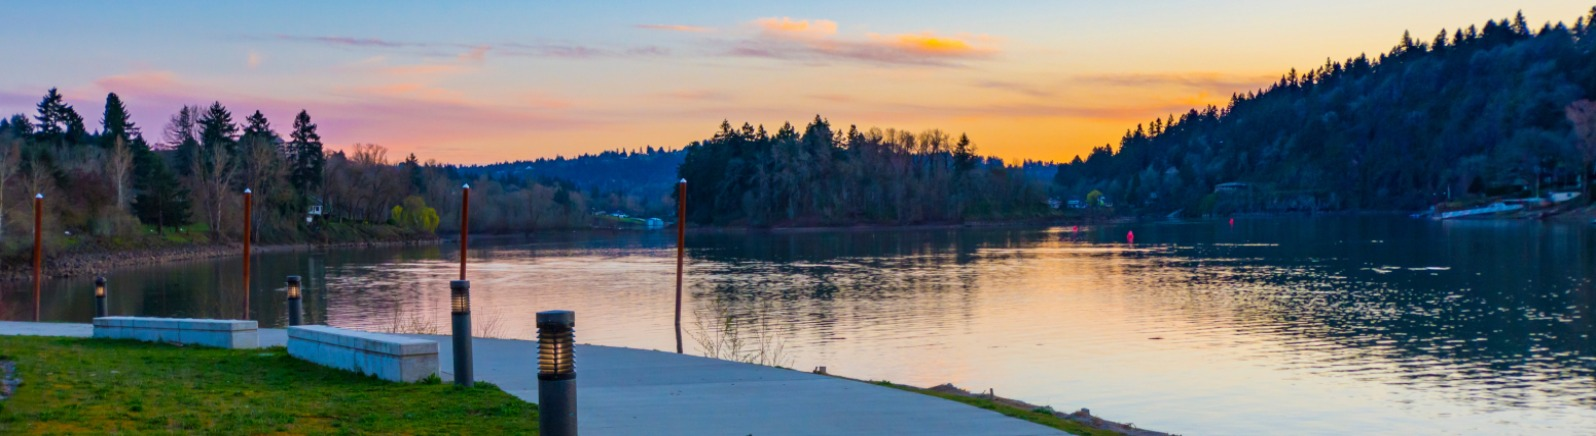 view of a paved path alongside the Willamette River with a pink and orange sunset going behind trees in the background